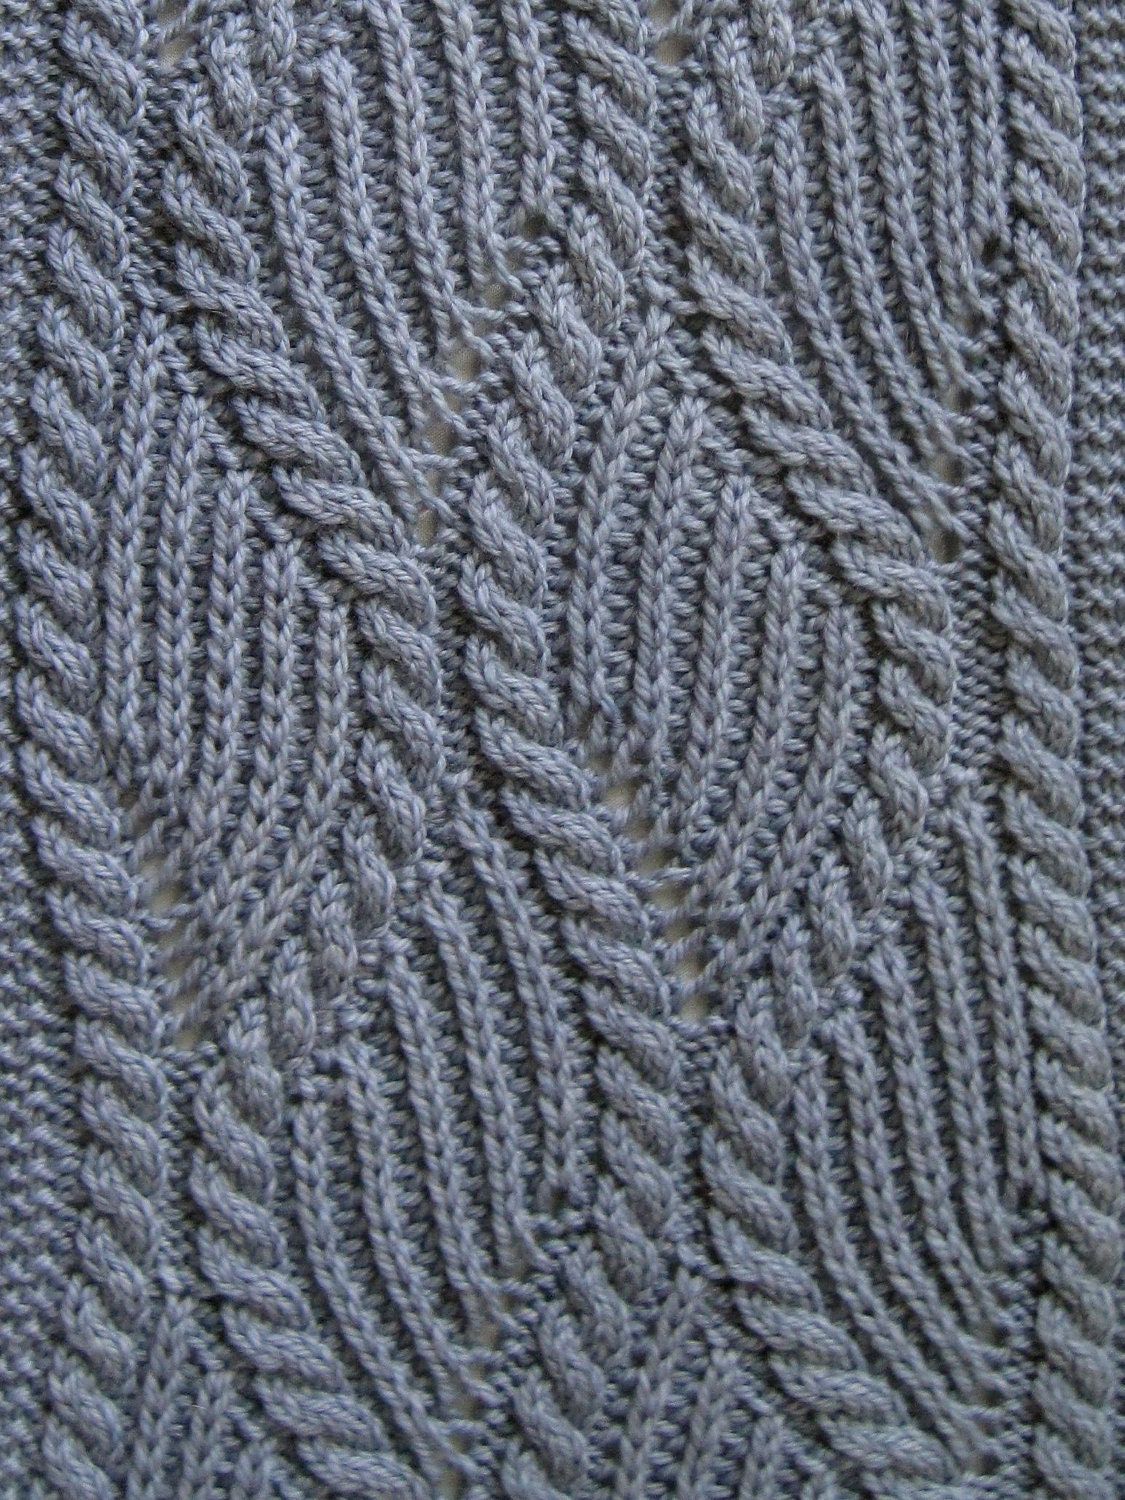 Knitting Stitch Patterns Cable : Knit Scarf Pattern: Brioche and Traveling Cable Knitting